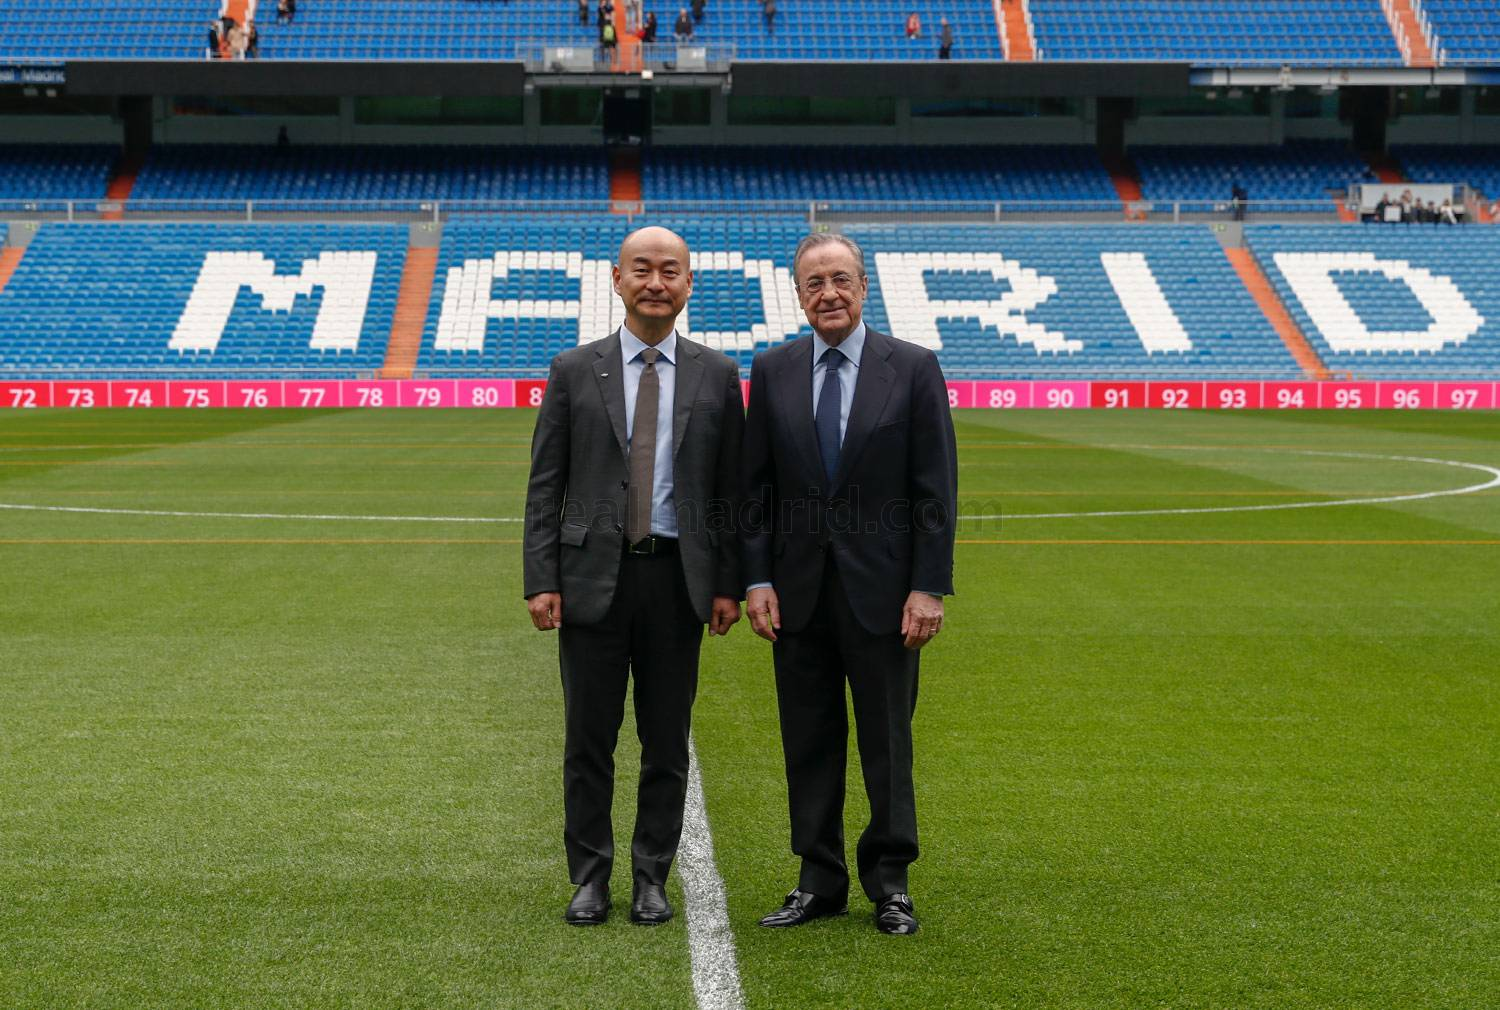 Real Madrid - Real Madrid y Hankook renuevan su acuerdo de patrocinio - 17-01-2020